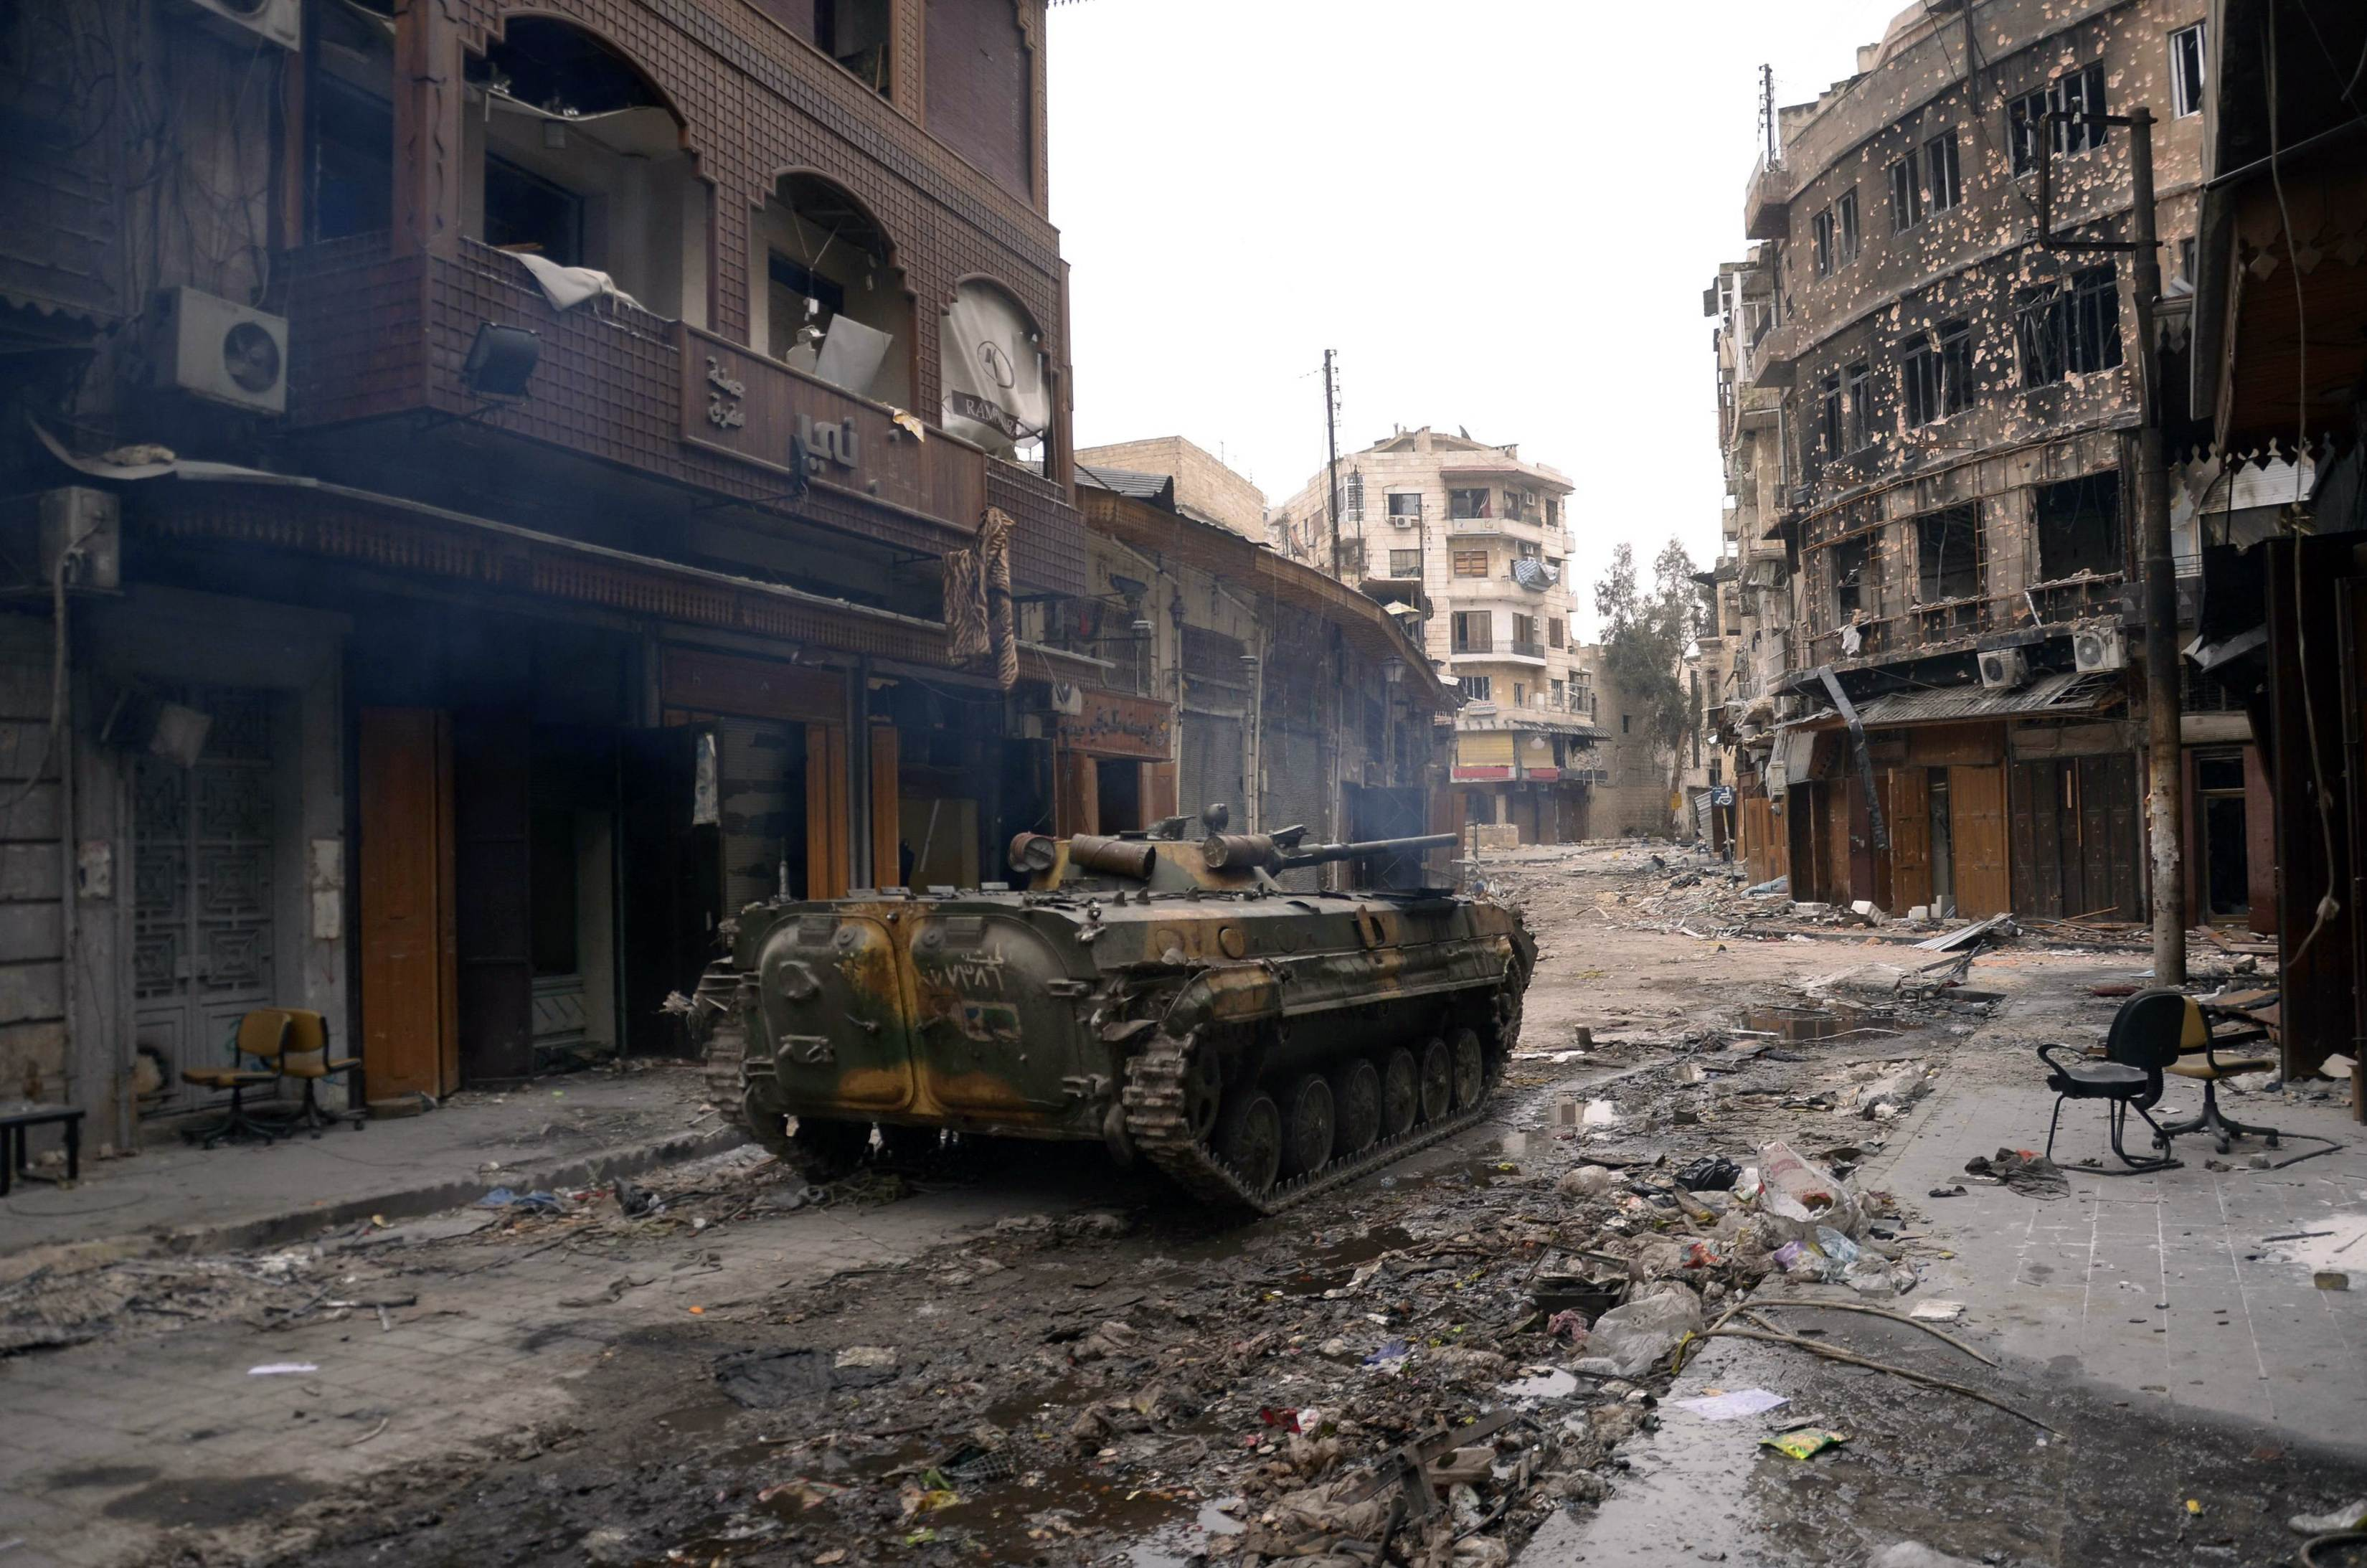 A military vehicle belonging to Syrian army loyal to President Bashar al-Assad is seen in Khan al-Wazir district near the castle of  Aleppo January 12, 2013.  REUTERS/George Ourfalian      (SYRIA - Tags: CIVIL UNREST POLITICS MILITARY)